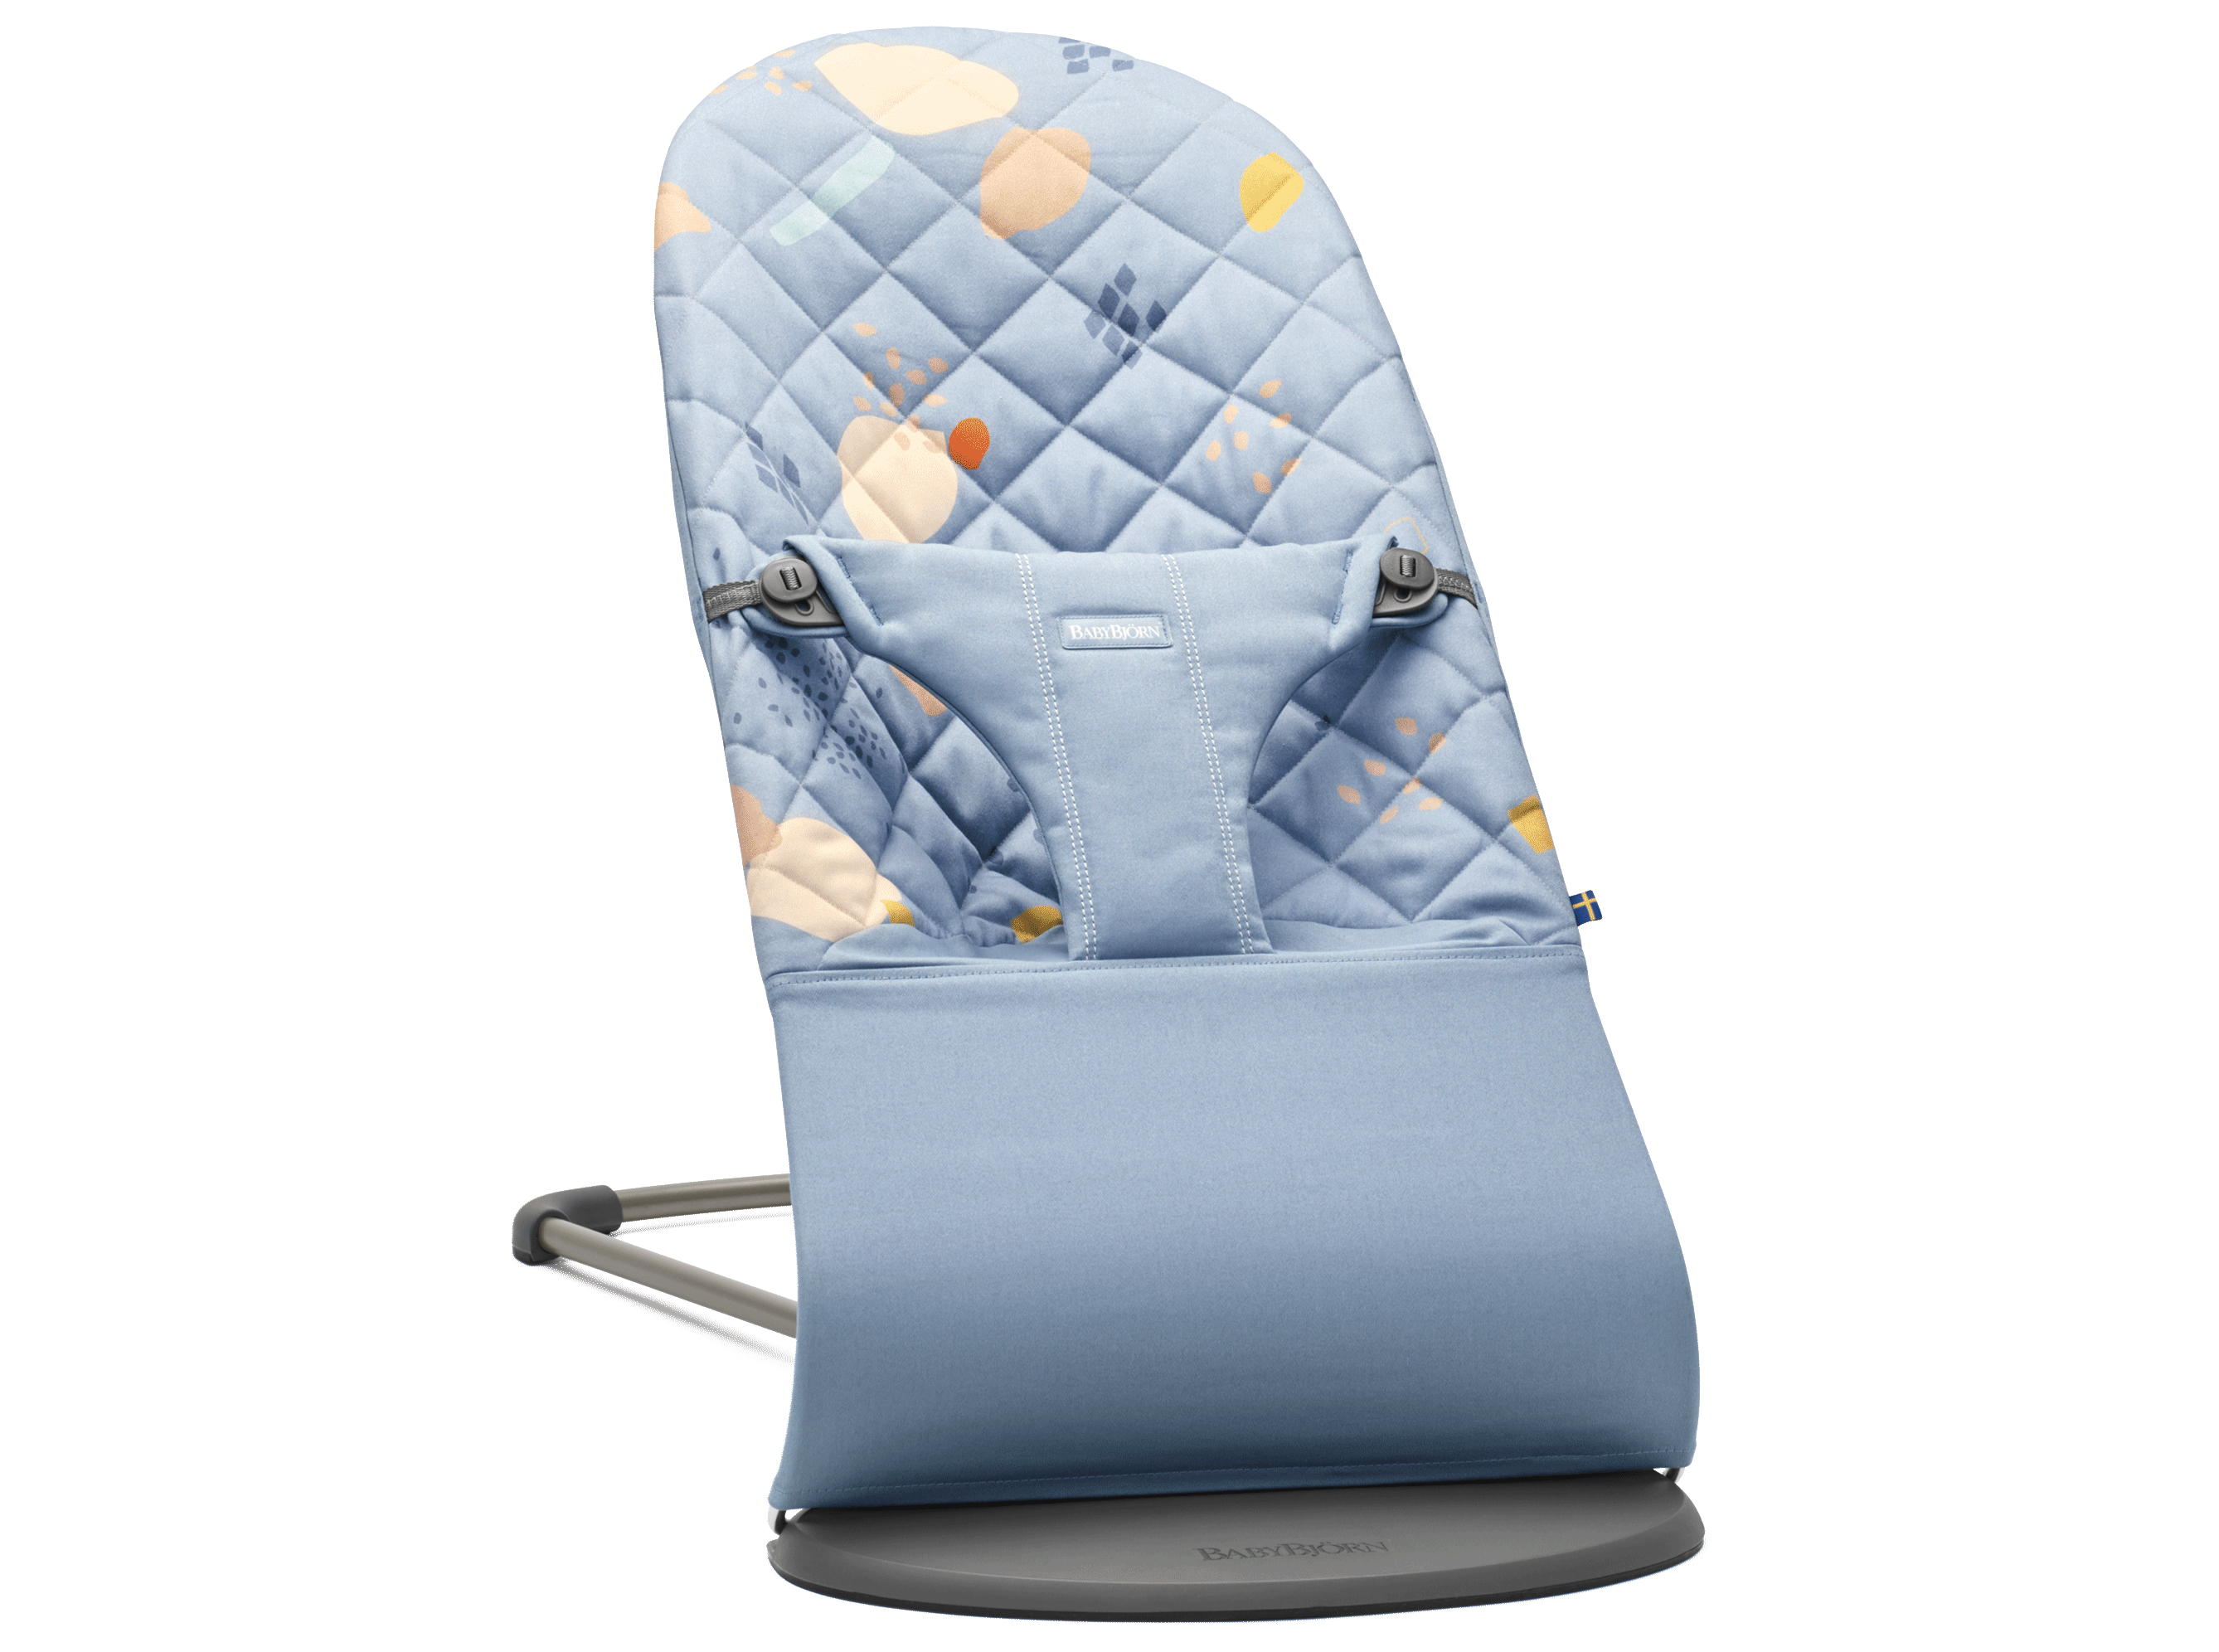 bouncer bliss limited edition 2018 babybj rn rh babybjorn com Baby Bjorn Bouncer Toy baby bjorn bouncer user manual